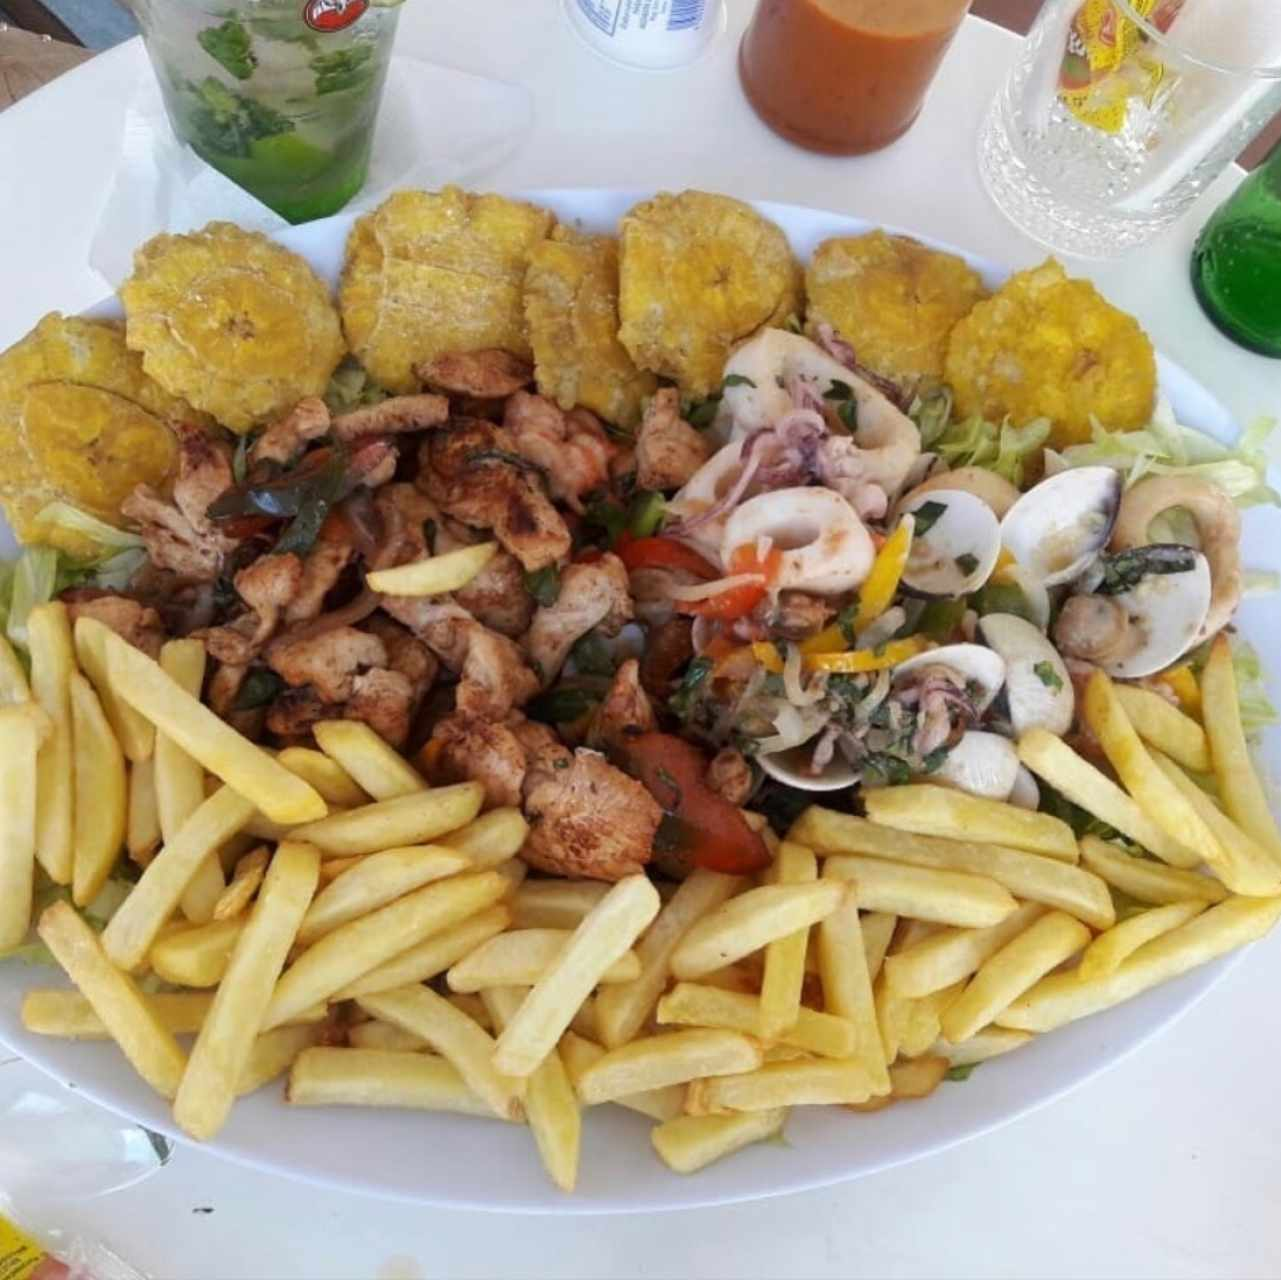 Ceviche (fresh and fried) with patacones and fries